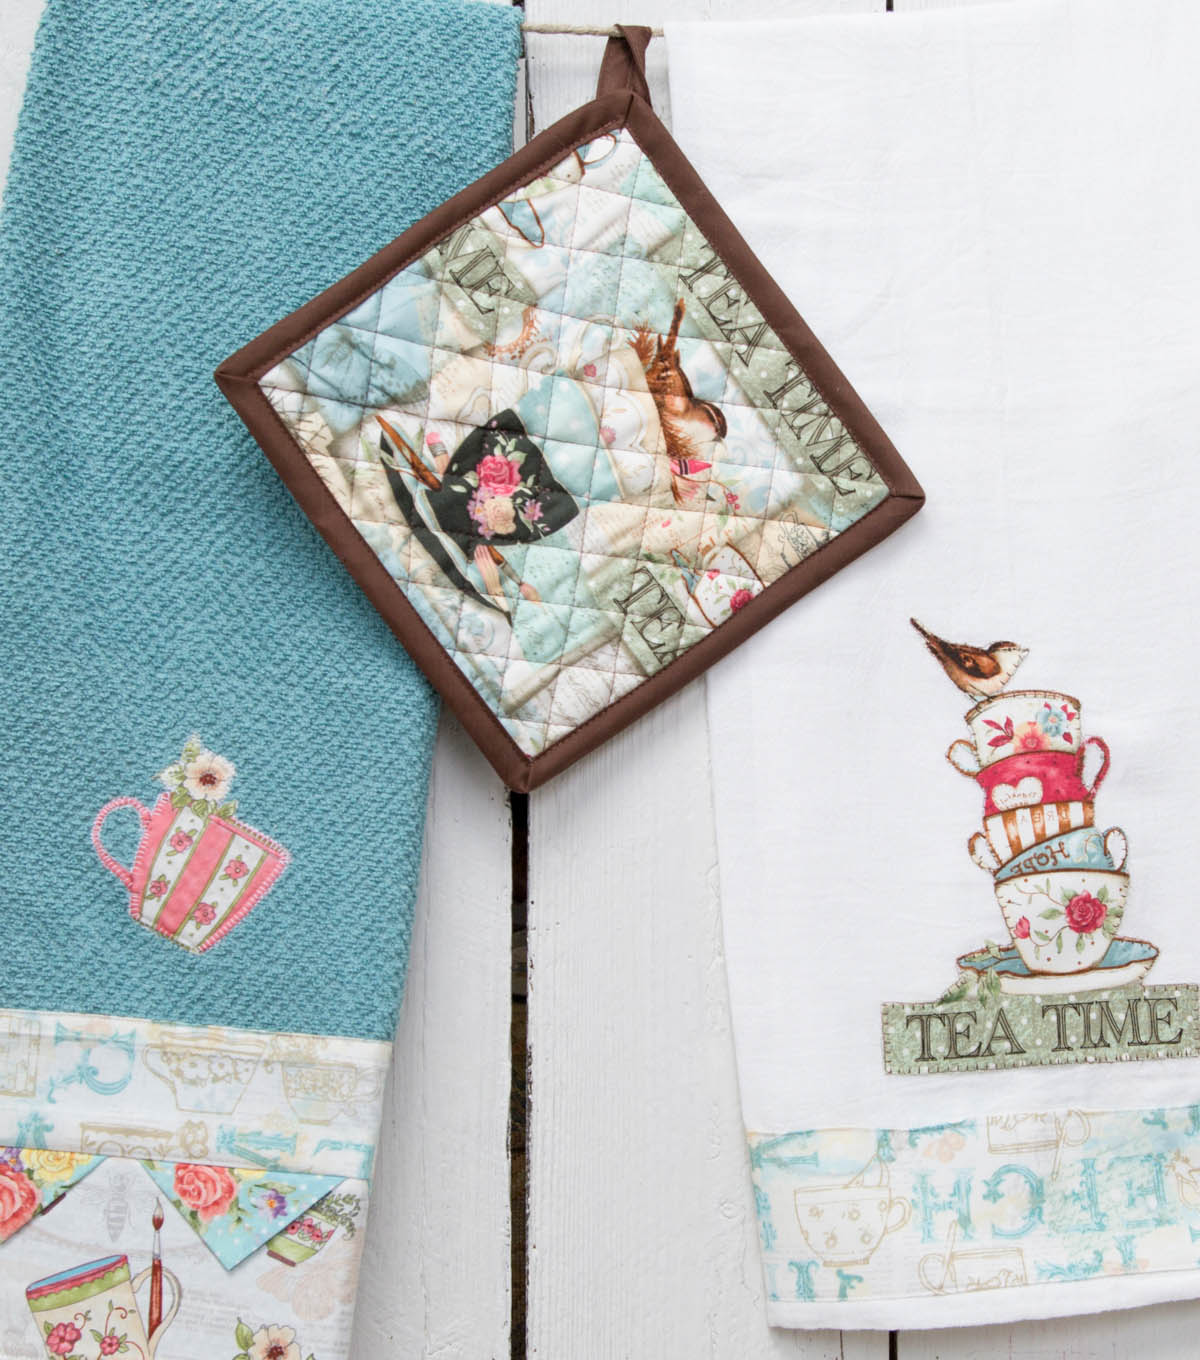 Tea Towels | JOANN on kitchen towels with words, bathrobe patterns, kitchen curtain patterns, kitchen towels with button, kitchen hand towels that hang, embroidered towels patterns, kitchen towels with birds, kitchen table patterns, kitchen window patterns, kitchen accessories patterns, kitchen towels for oven, mirror patterns,